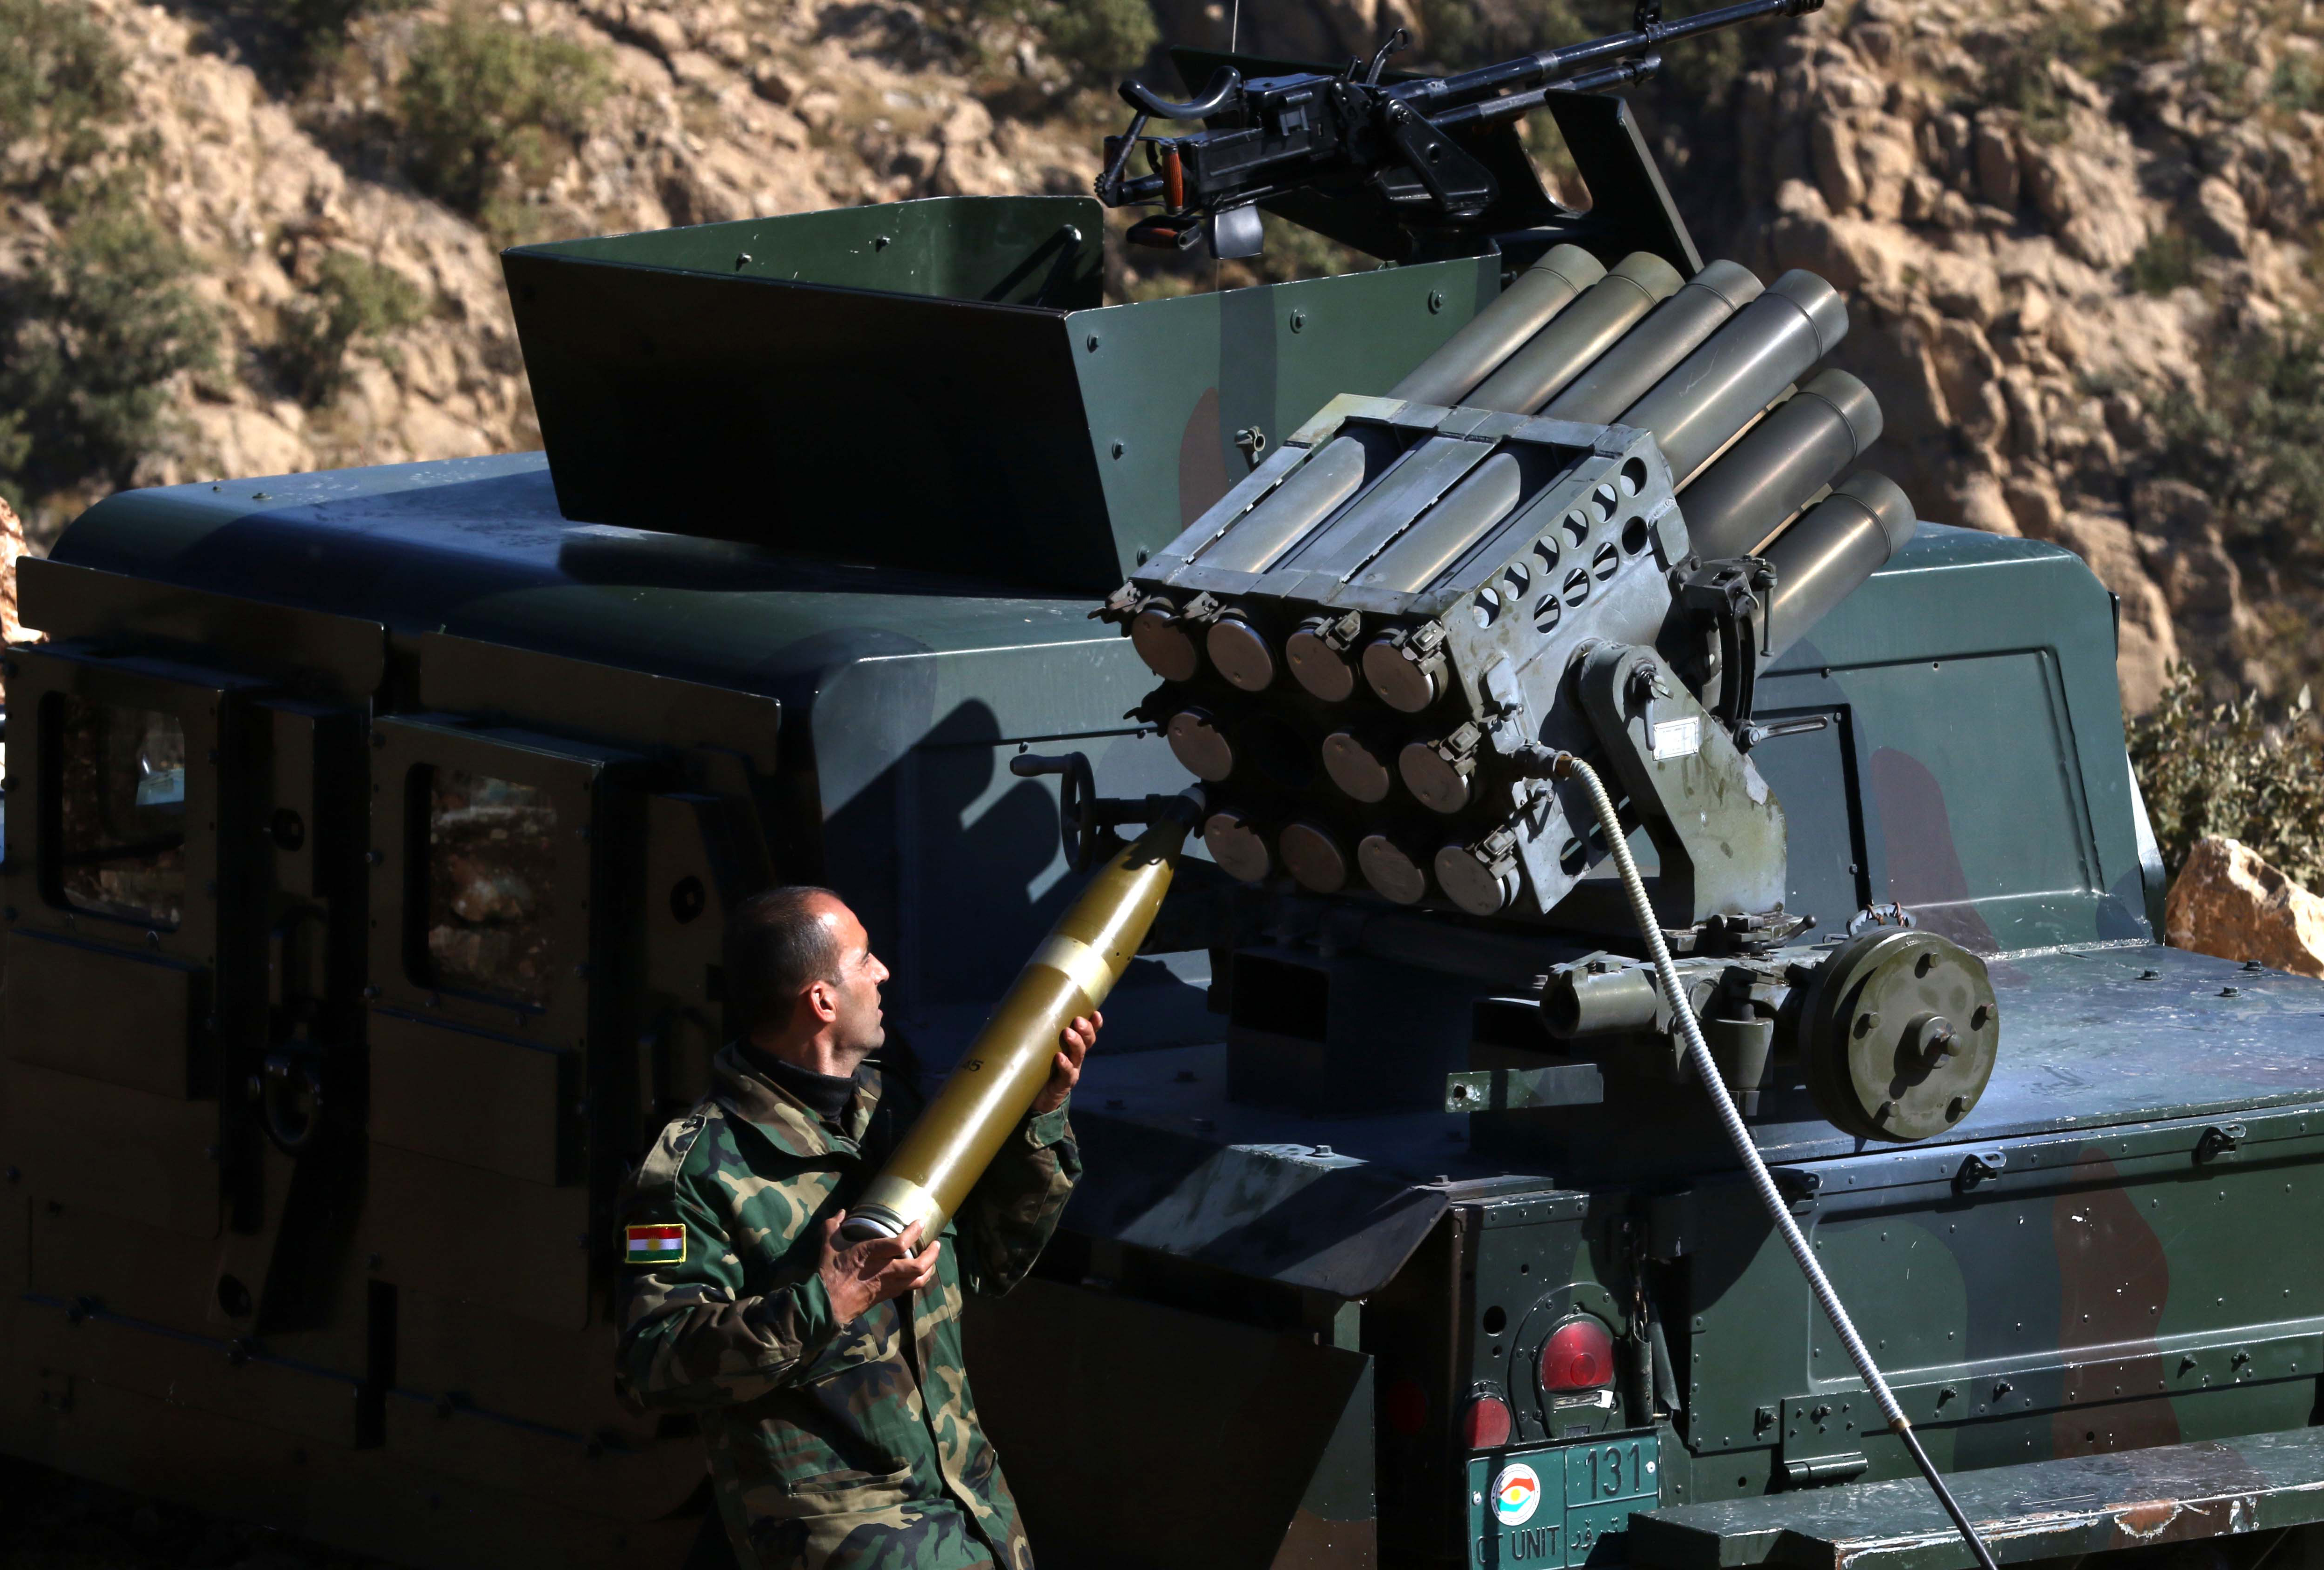 Iraqi Kurdish forces take part in an operation backed by US-led airstrikes in the northern Iraqi town of Sinjar to retake the town from the Islamic State group and cut a key supply line to Syria, Nov. 12, 2015.